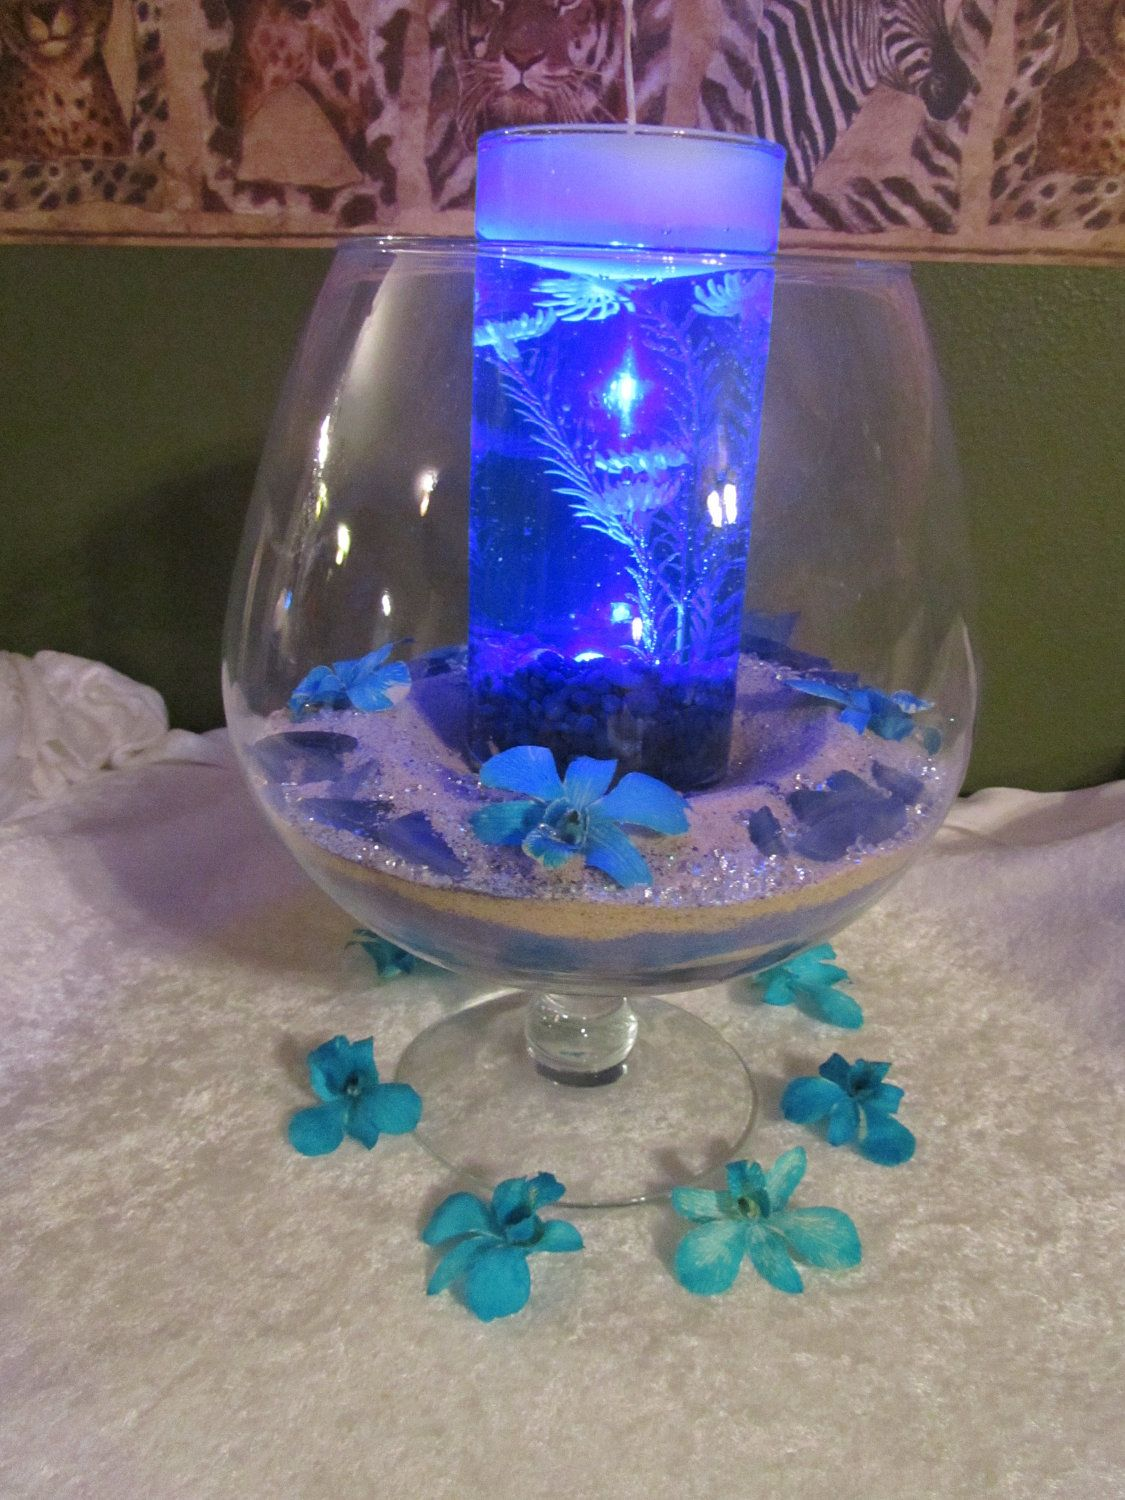 Sand centerpeice with blue waterproof light in inner vase